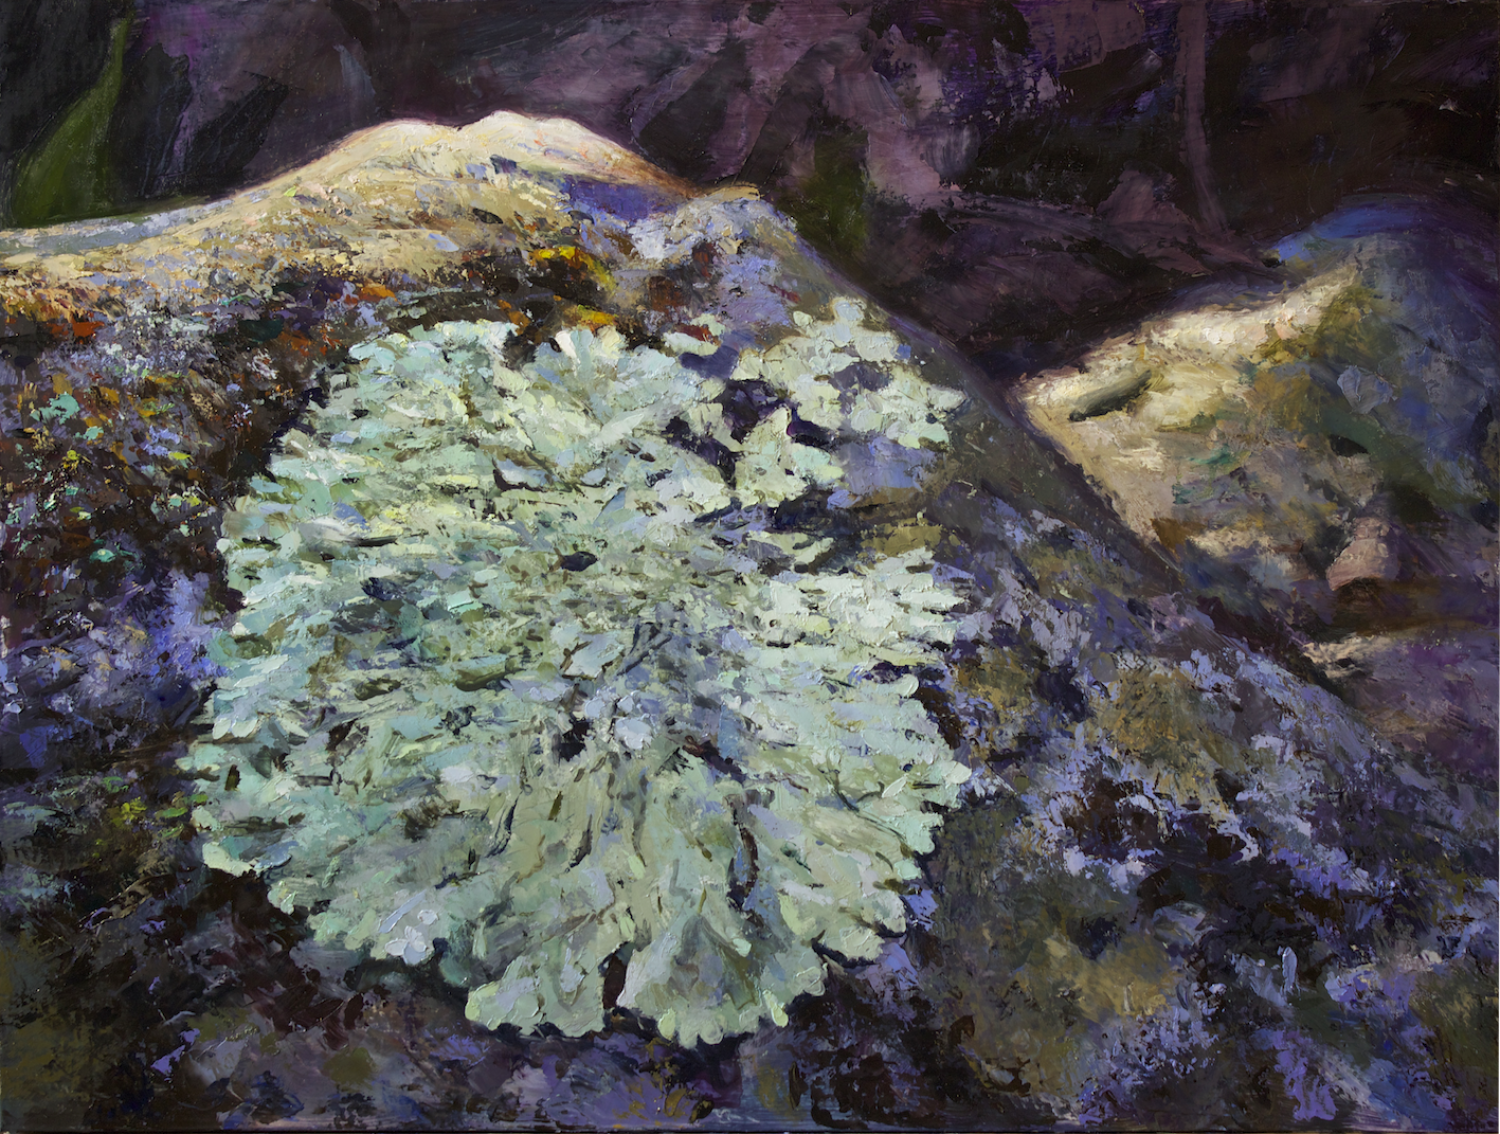 Current work inspired by lichens, their textures and colors as well as their role in making our planet habitable